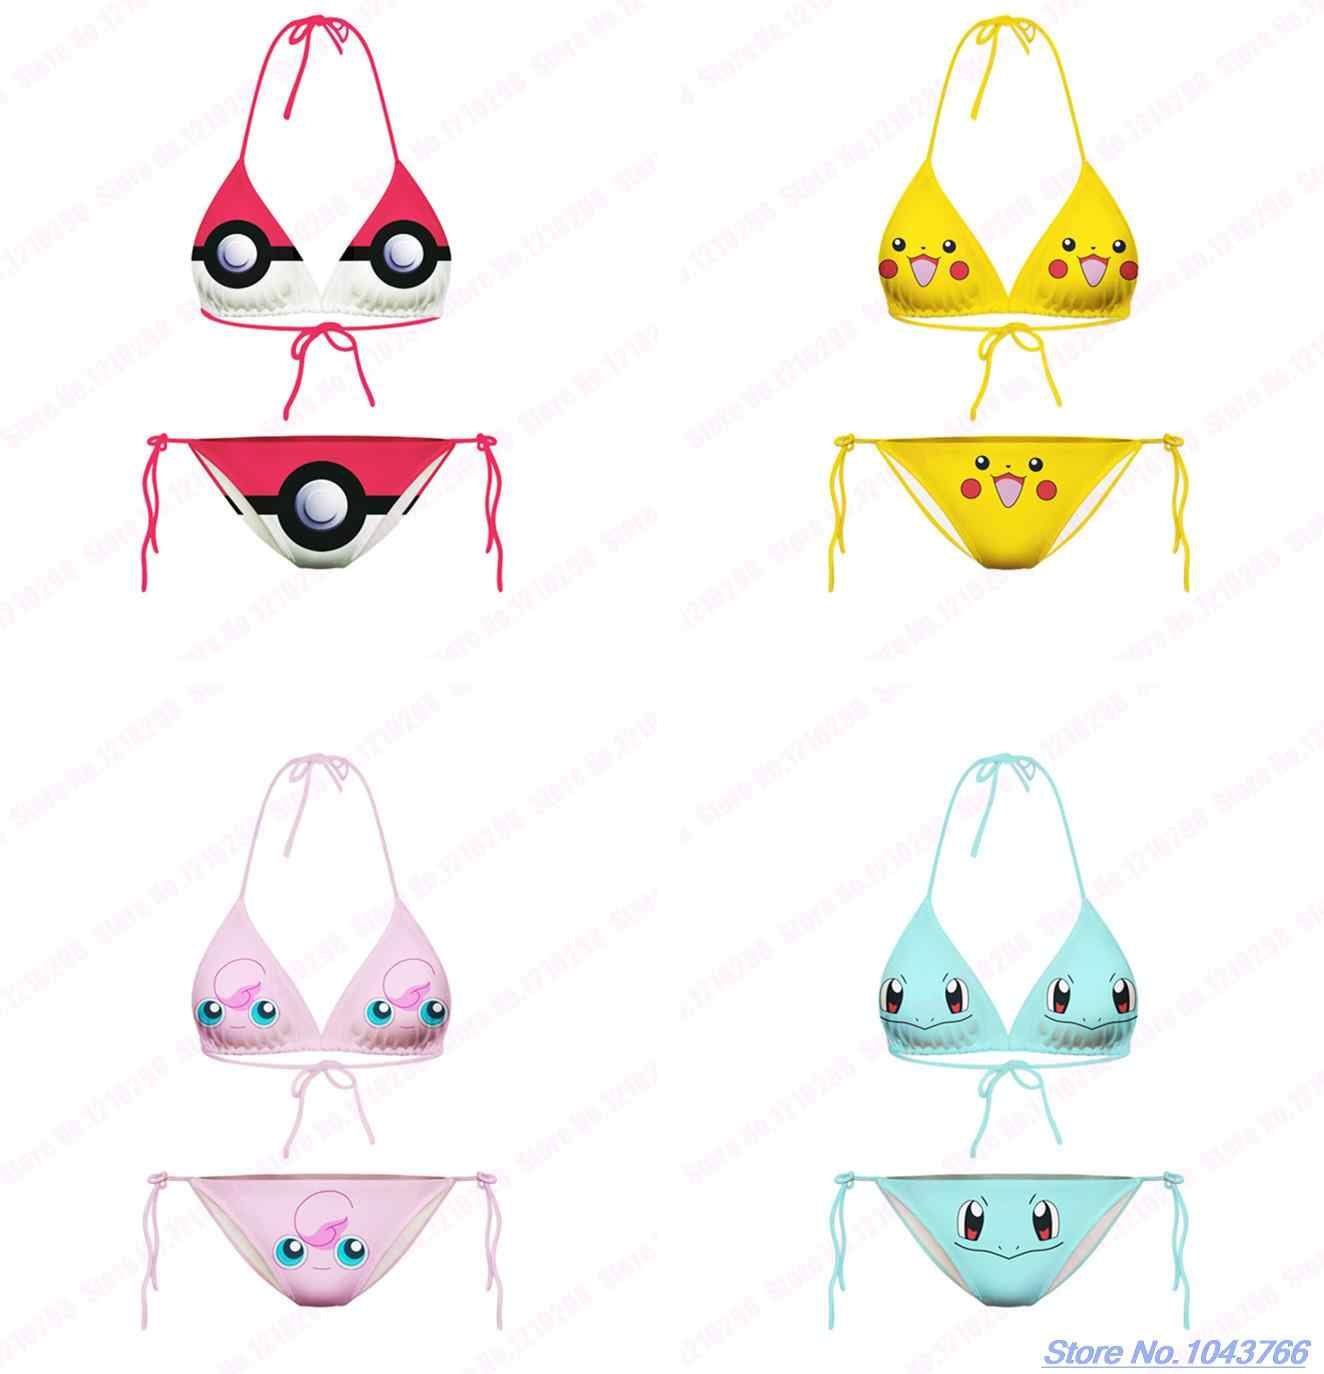 1767129e9b5 Detail Feedback Questions about Cute Smiley Face Pikachu Swimwear Two  Pieces Squirtle Beachwear 3D Print Cartoon Pokemon Go Bikini Set Jigglypuff  Swimsuit ...